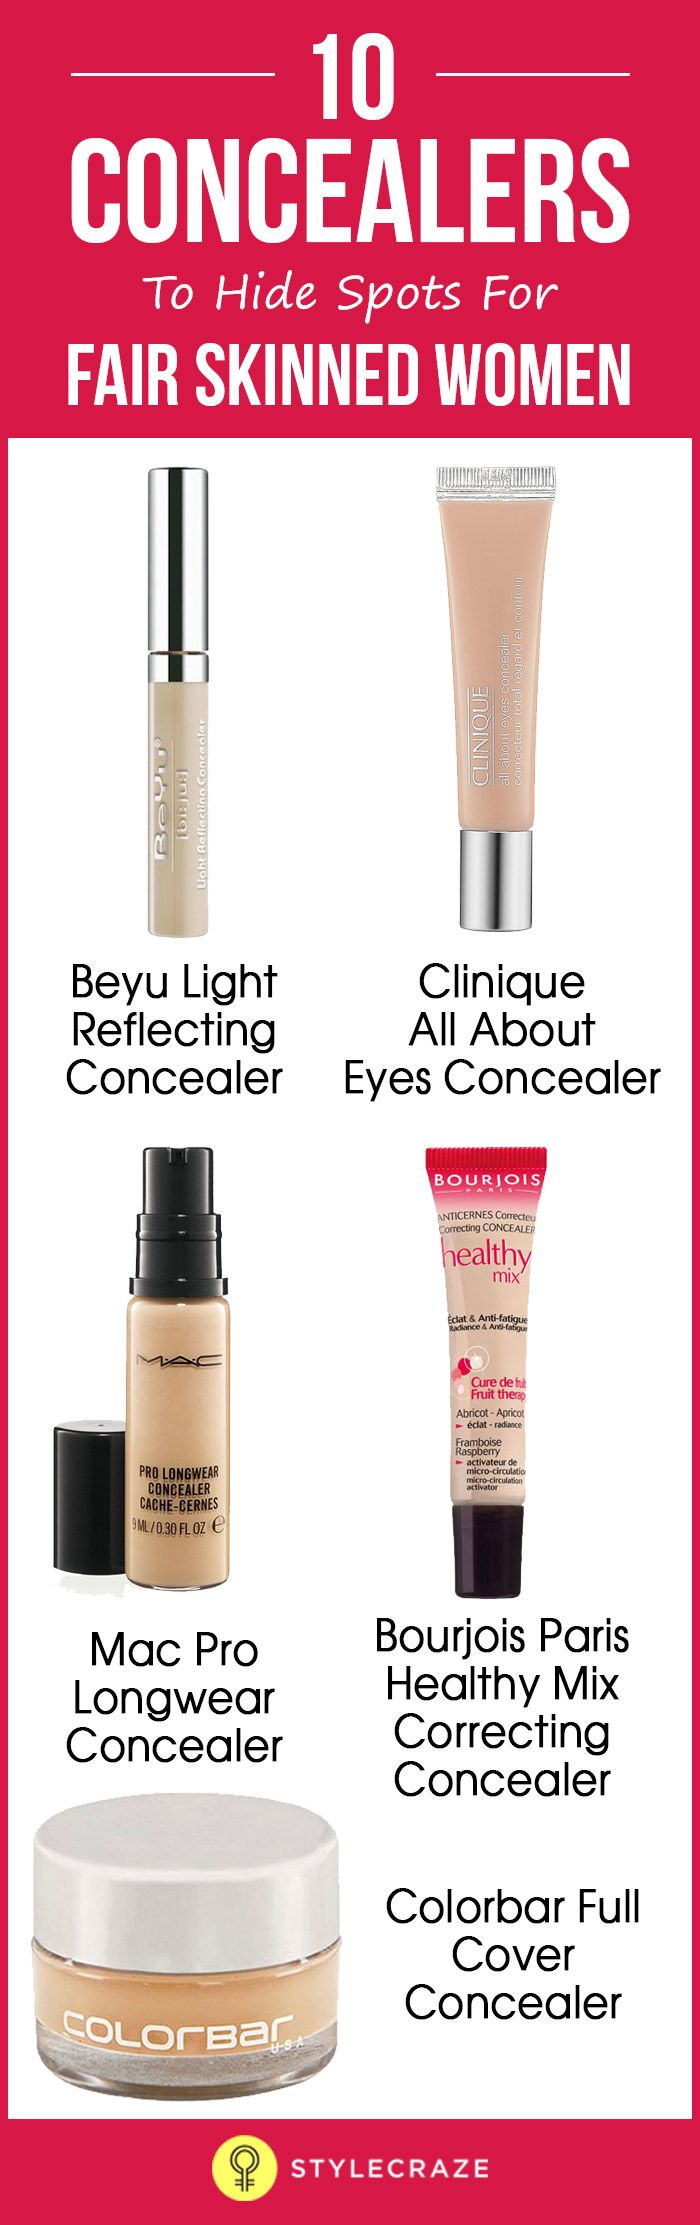 15 Best Concealers For Women In India